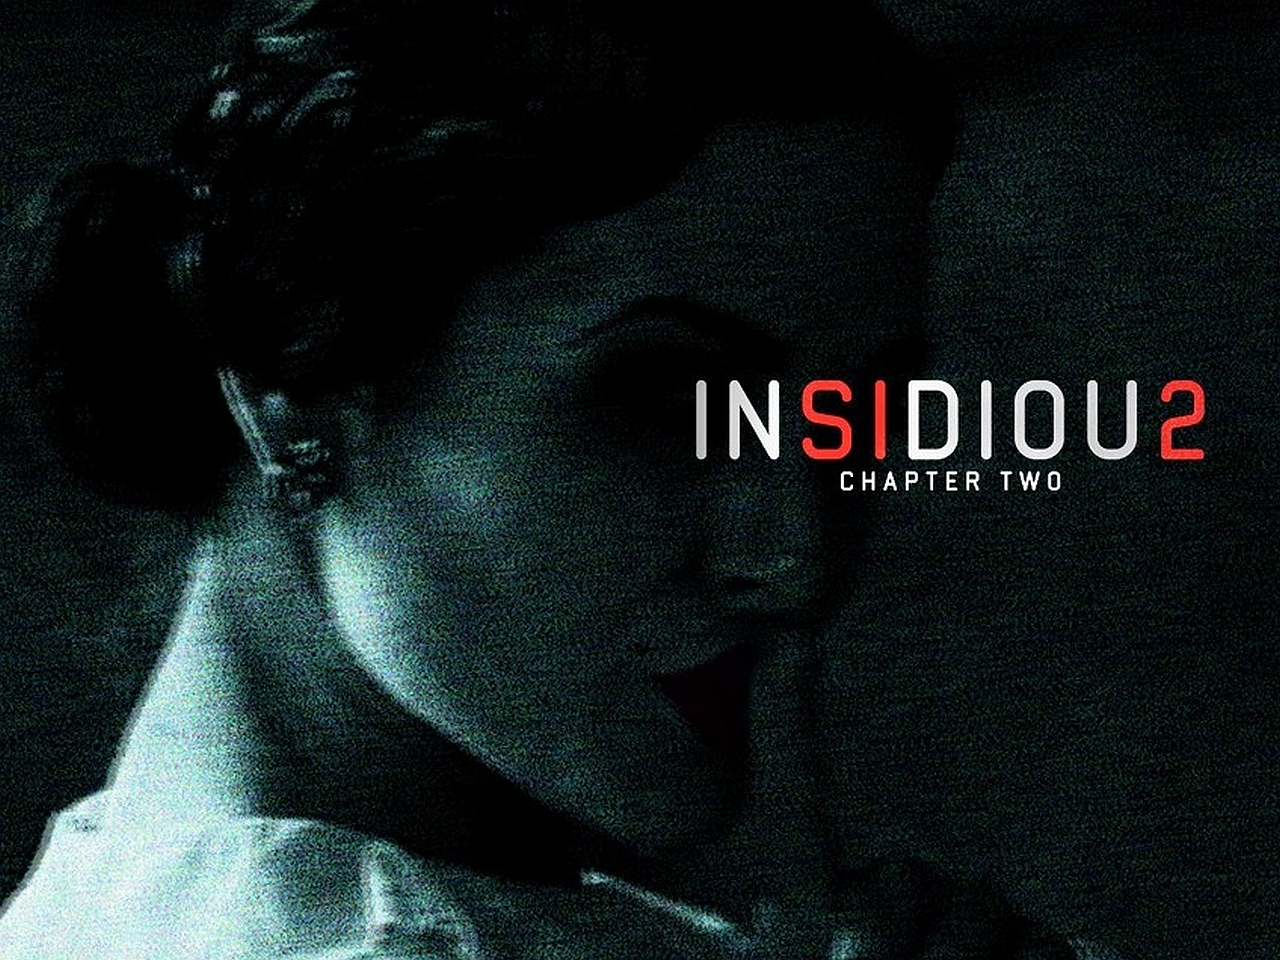 Insidious: Chapter 2 Image - ID: 380148 - Image Abyss